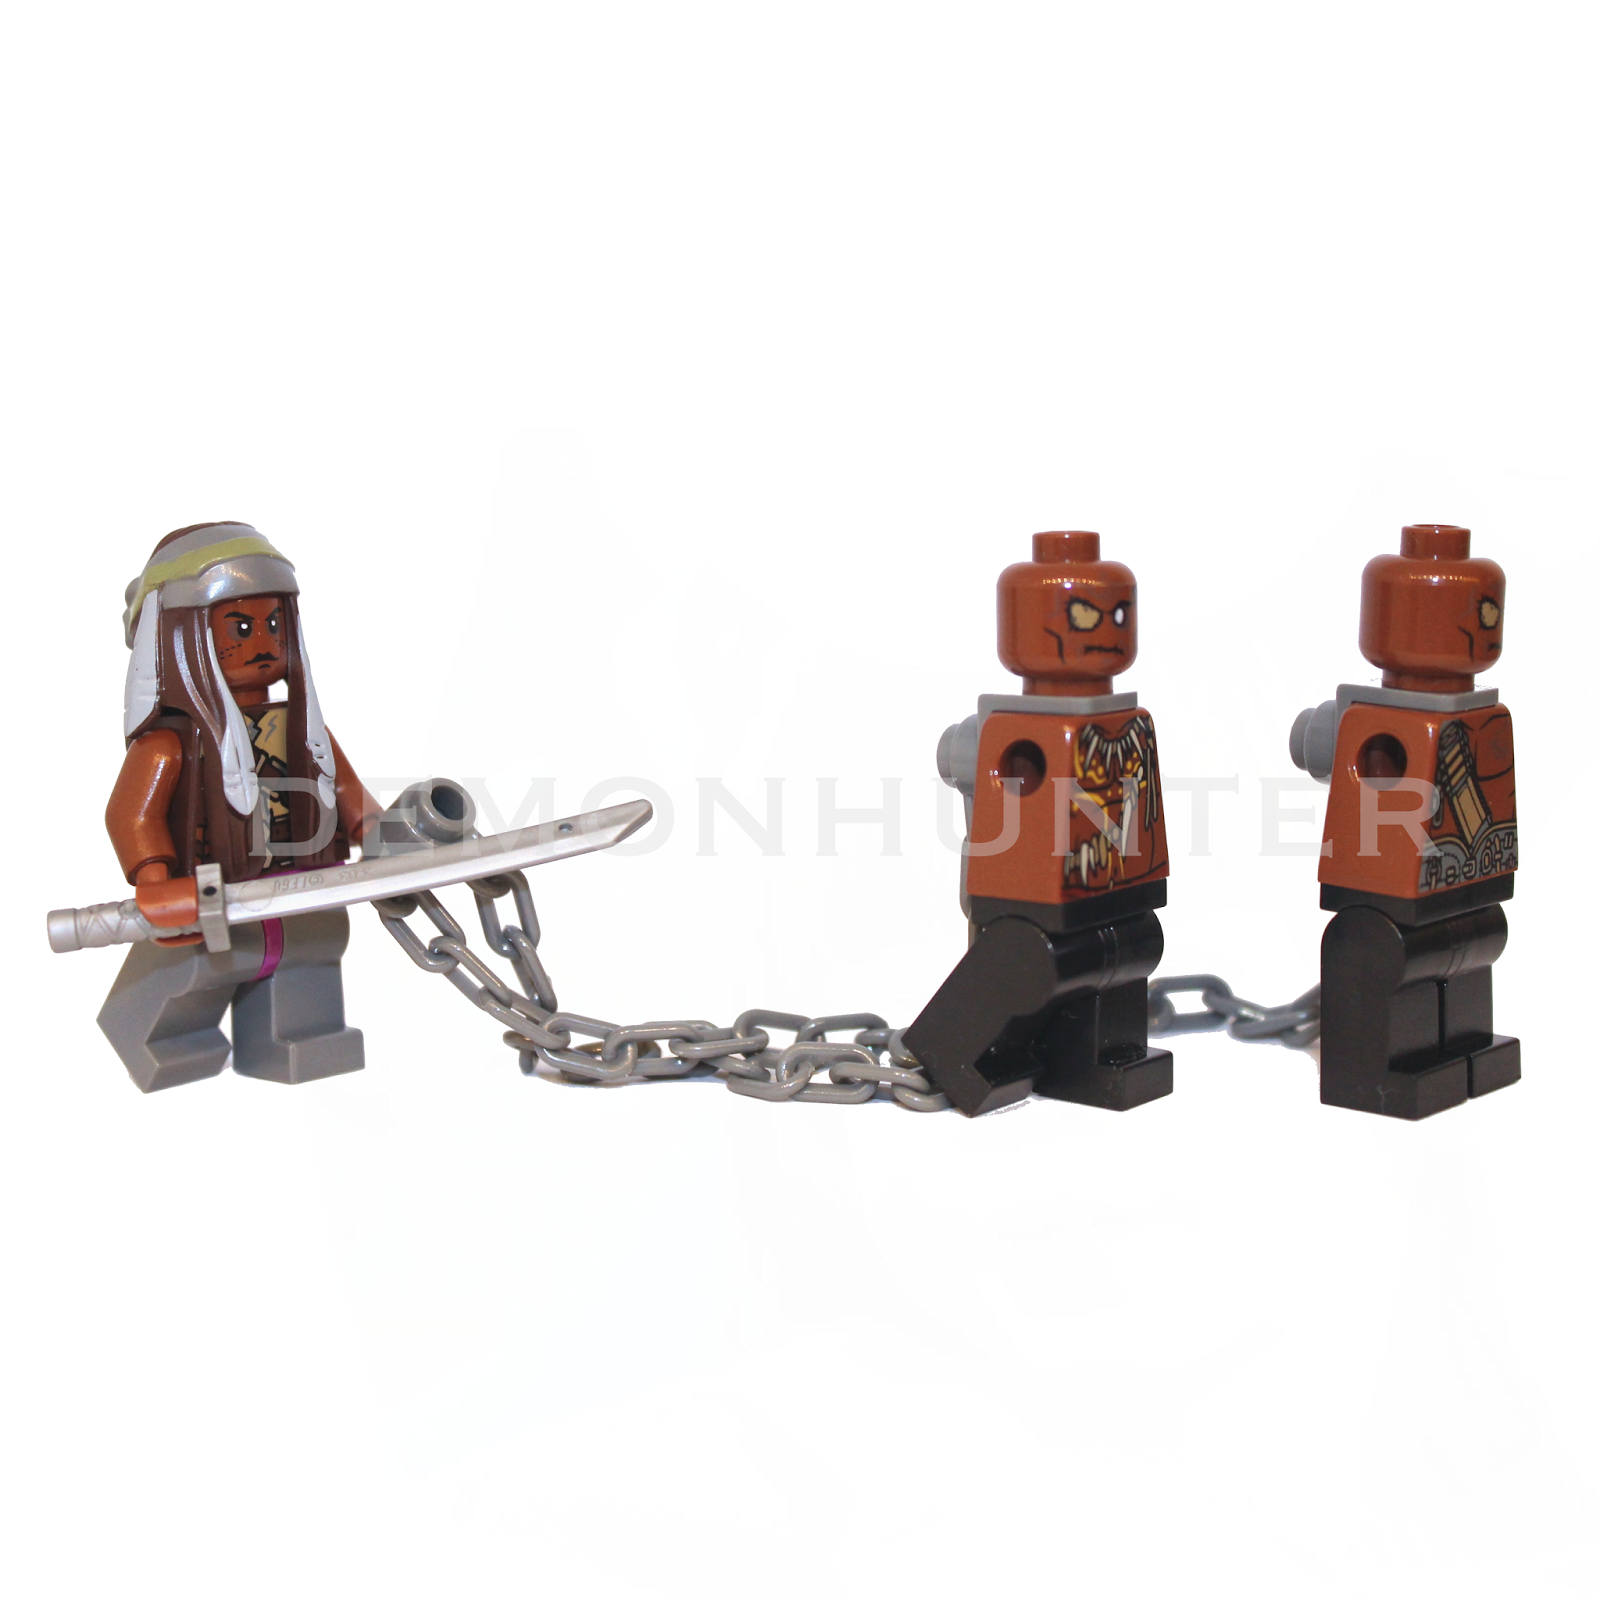 Walking dead lego daryl the walking -  Lego Walking Dead Michonne Lego Michonne Michonne Walking Dead Lego Custom Walking Dead